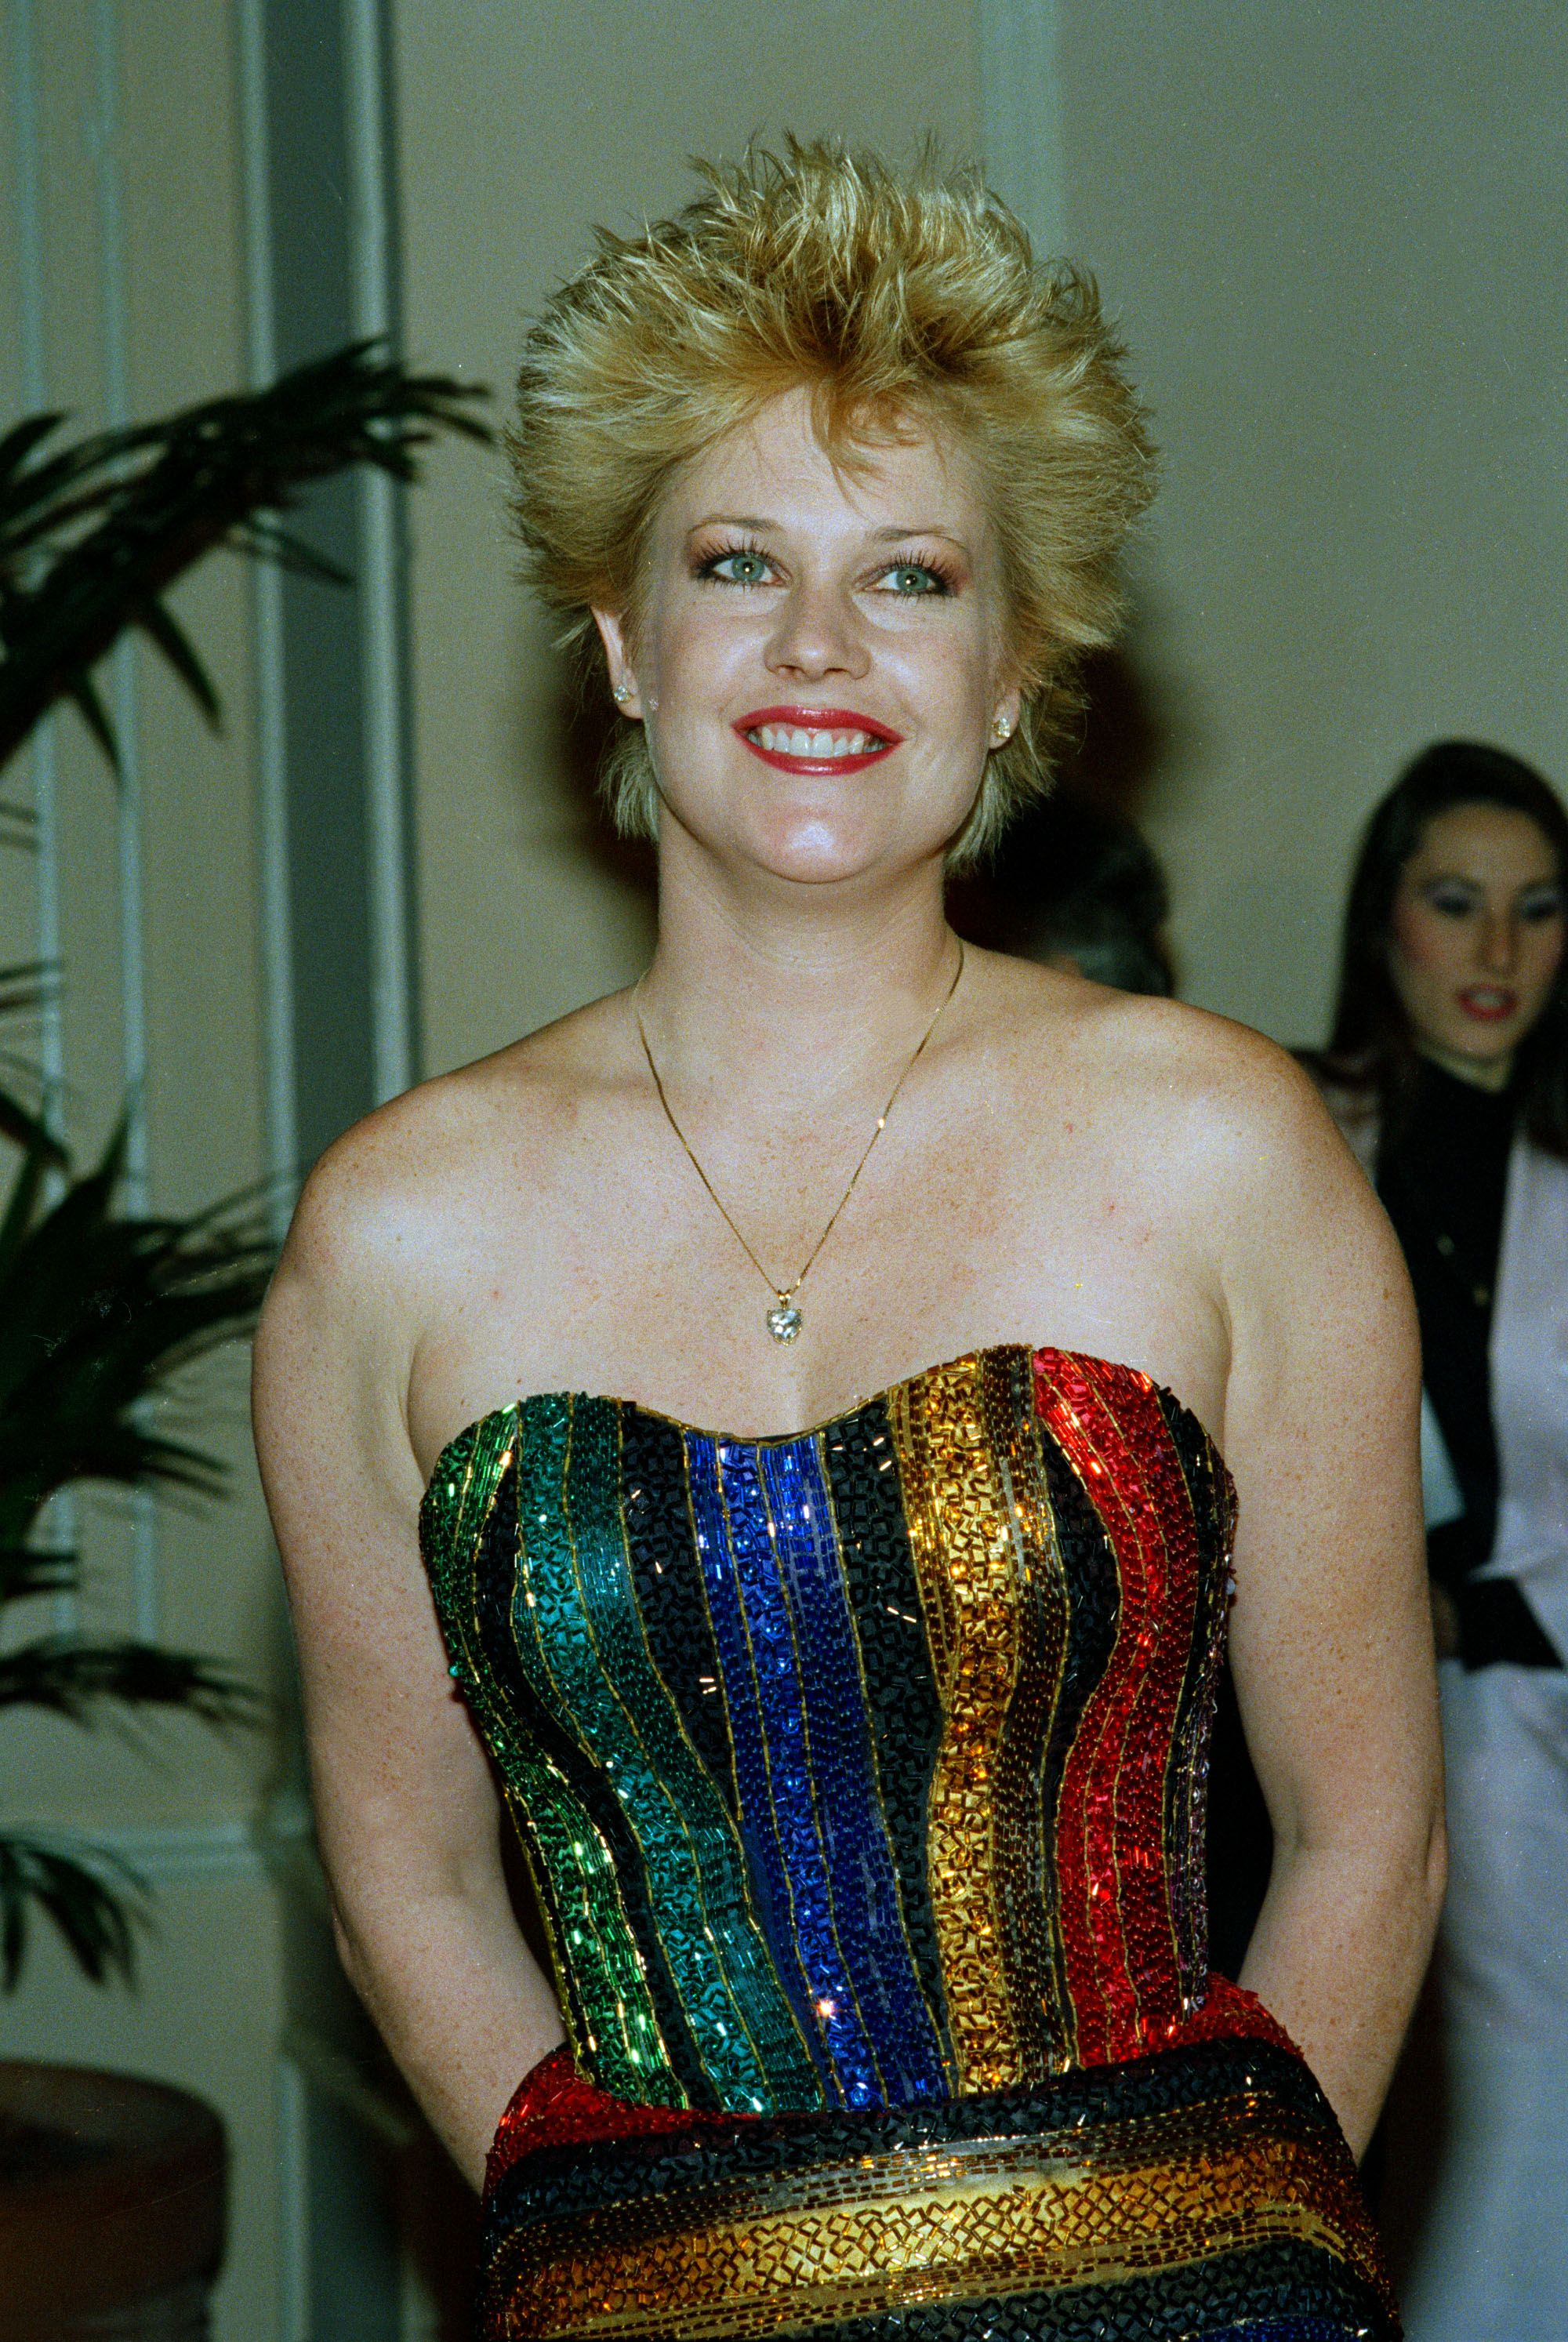 Griffith Actress Melanie Griffith is seen at the Golden Globe Awards in Los AngelesGolden Globes Griffith 1987, Los Angeles, USA